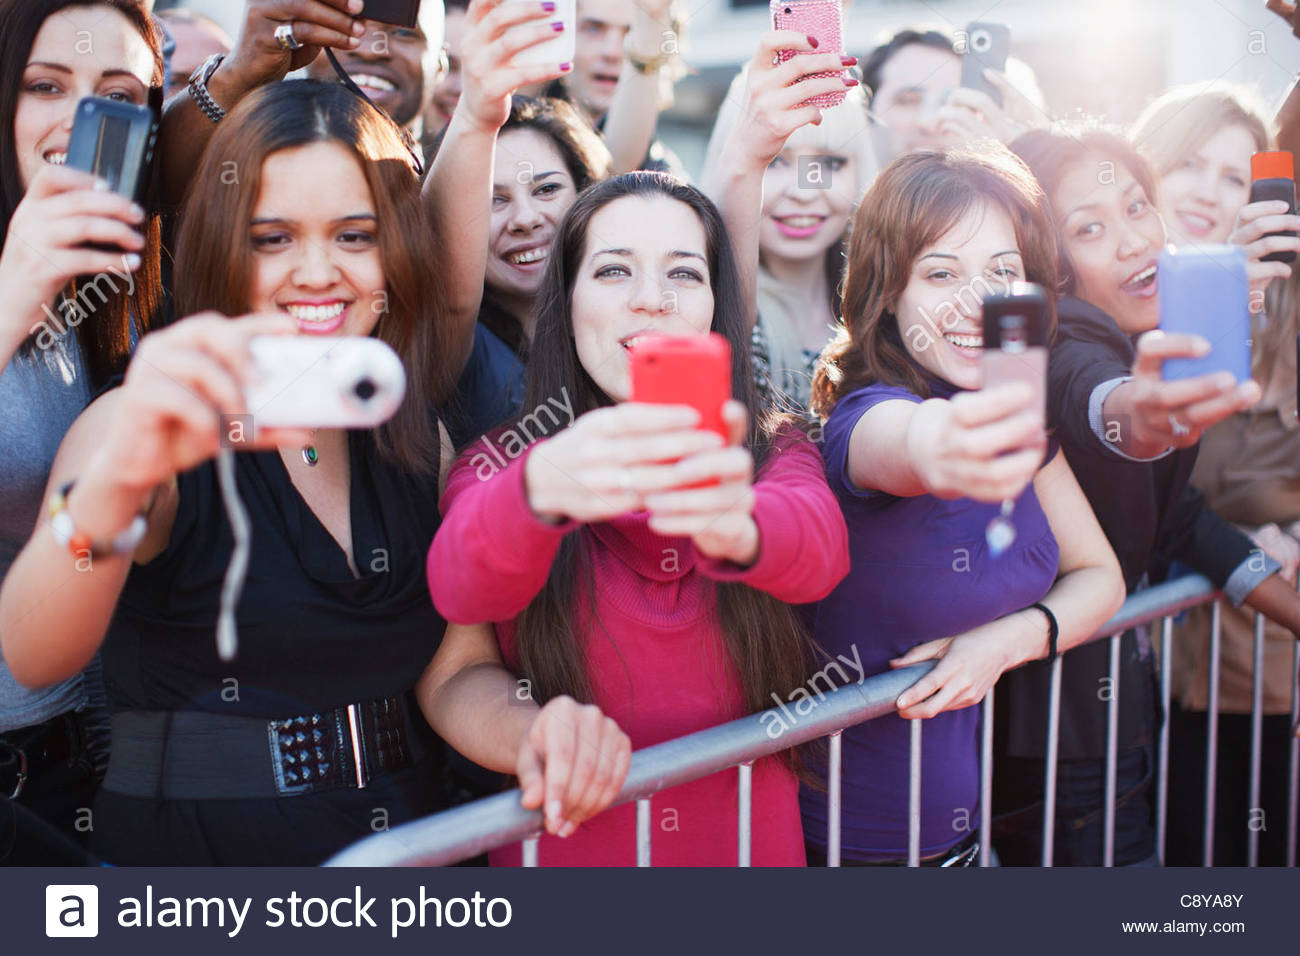 Fans taking pictures with cell phone behind barrier - Stock Image